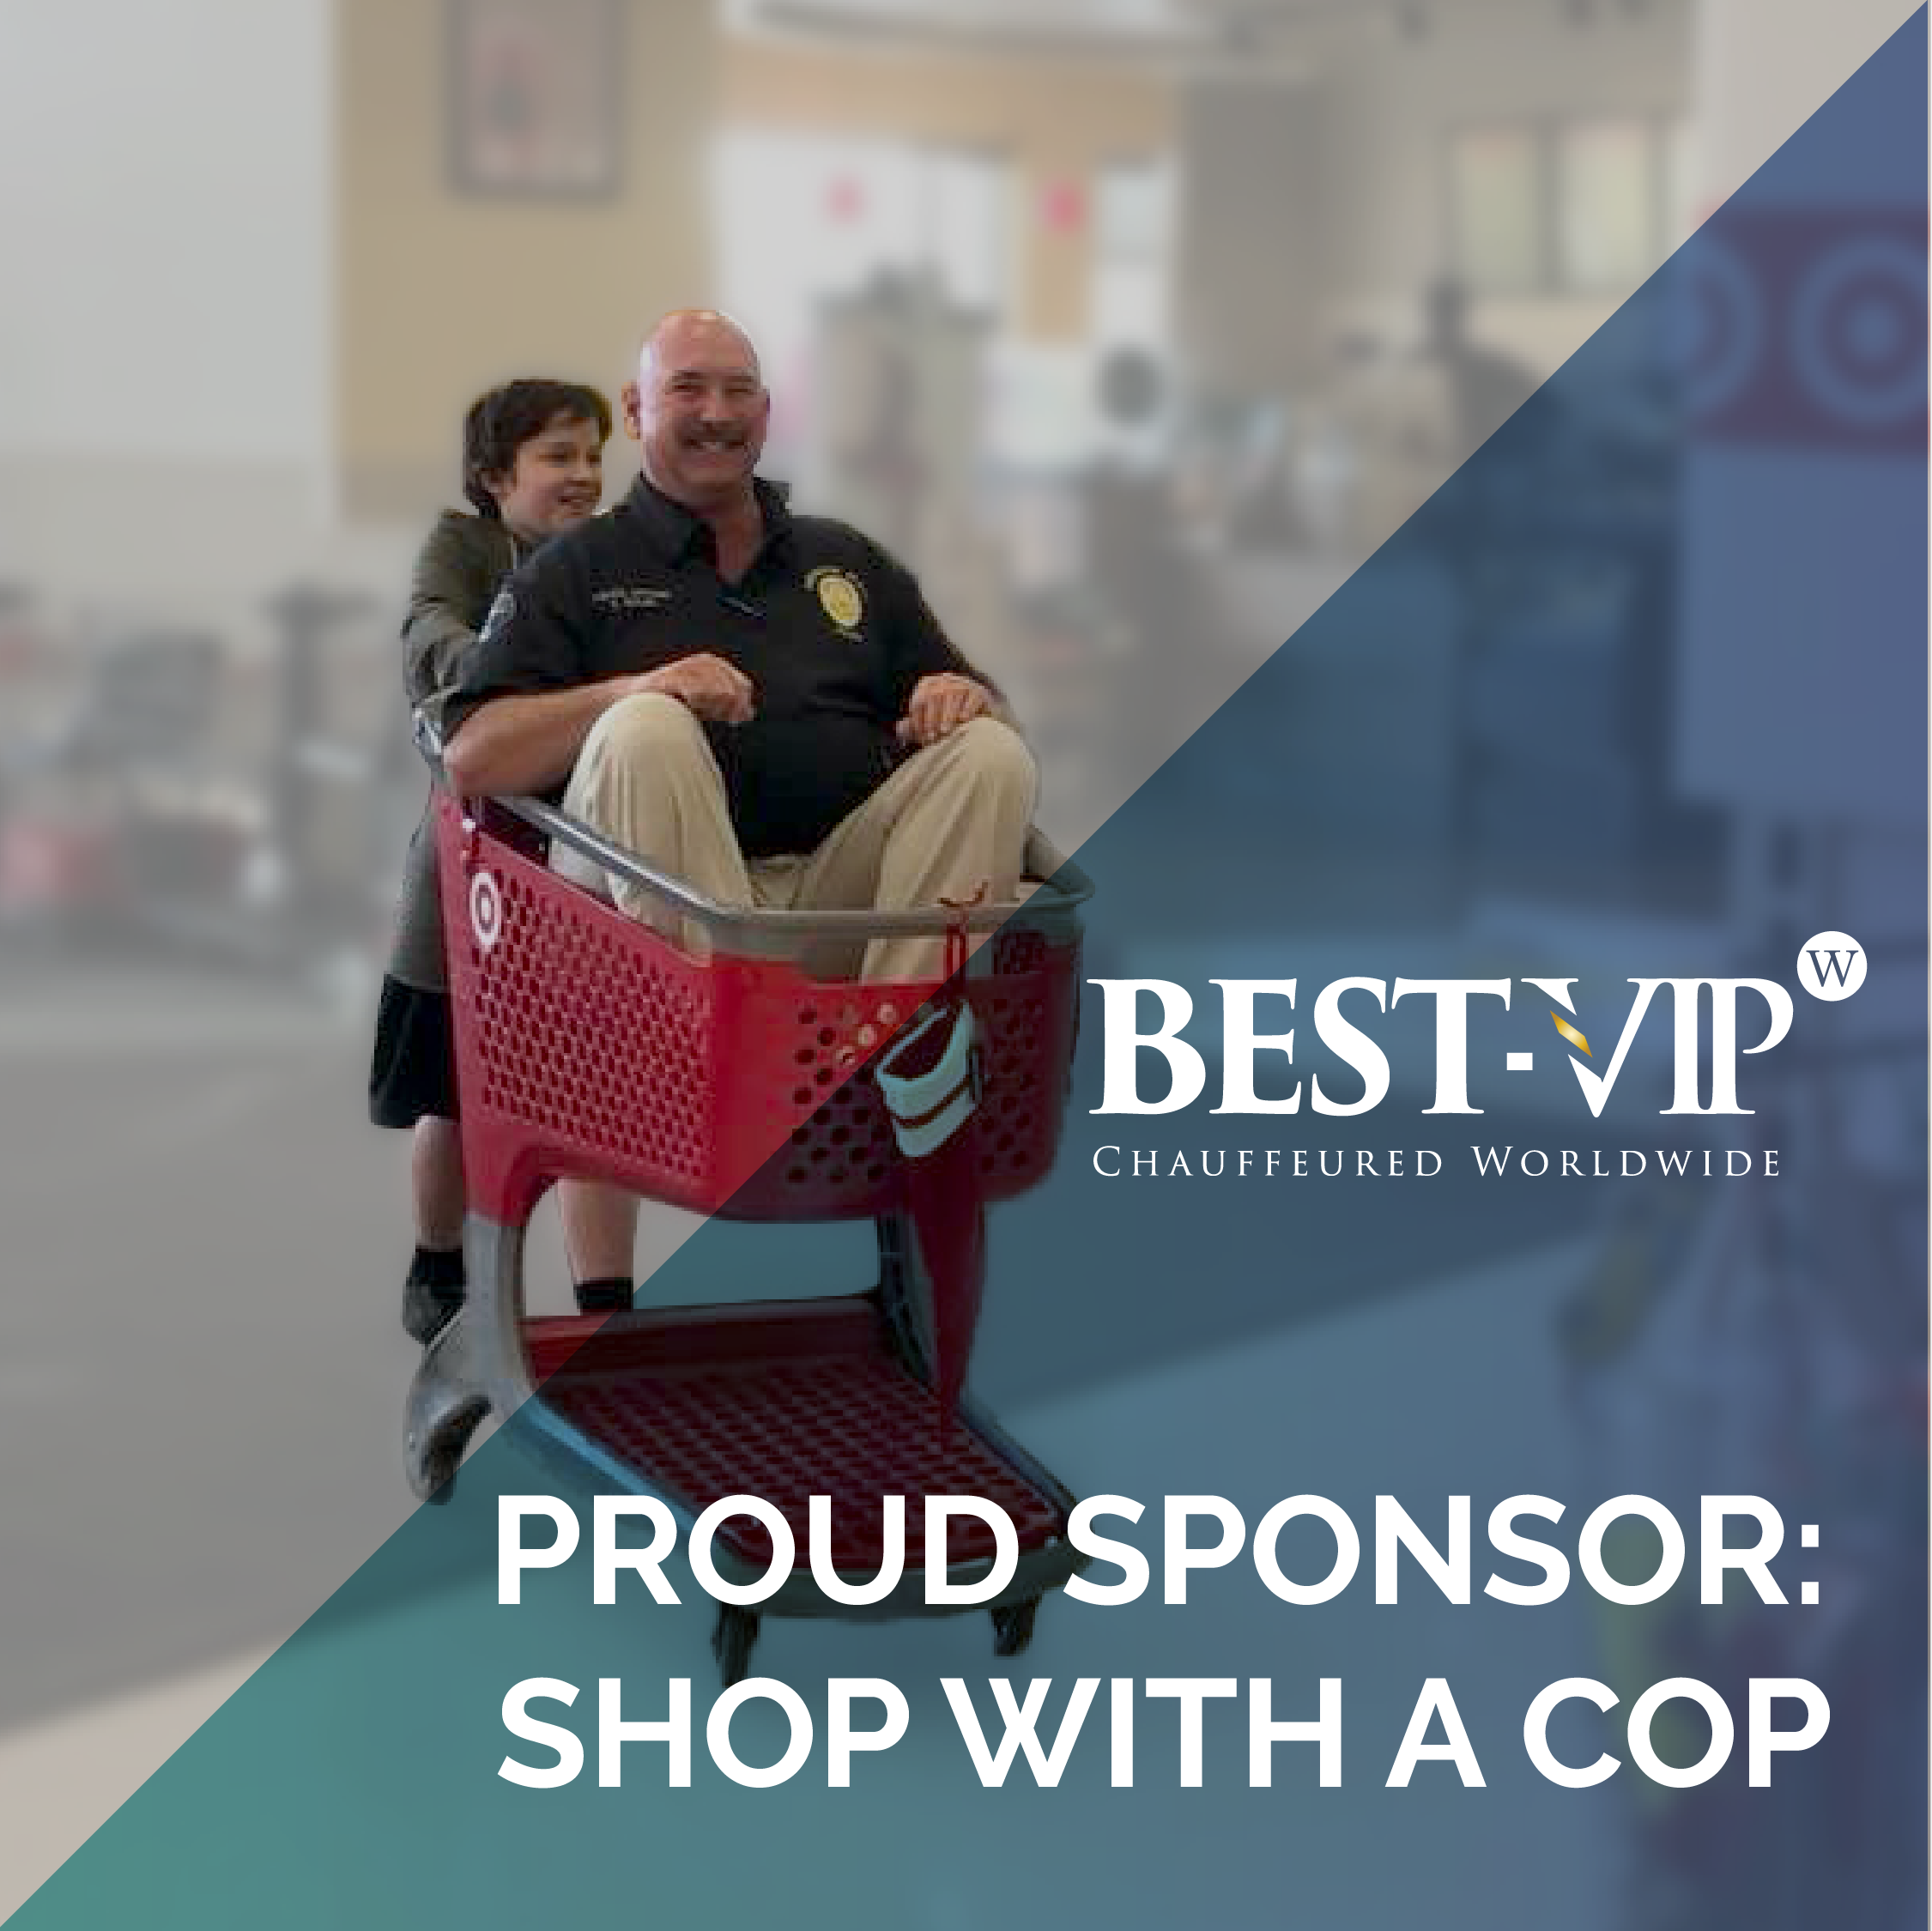 BEST-VIP supports Shop with a Cop event with transportation services